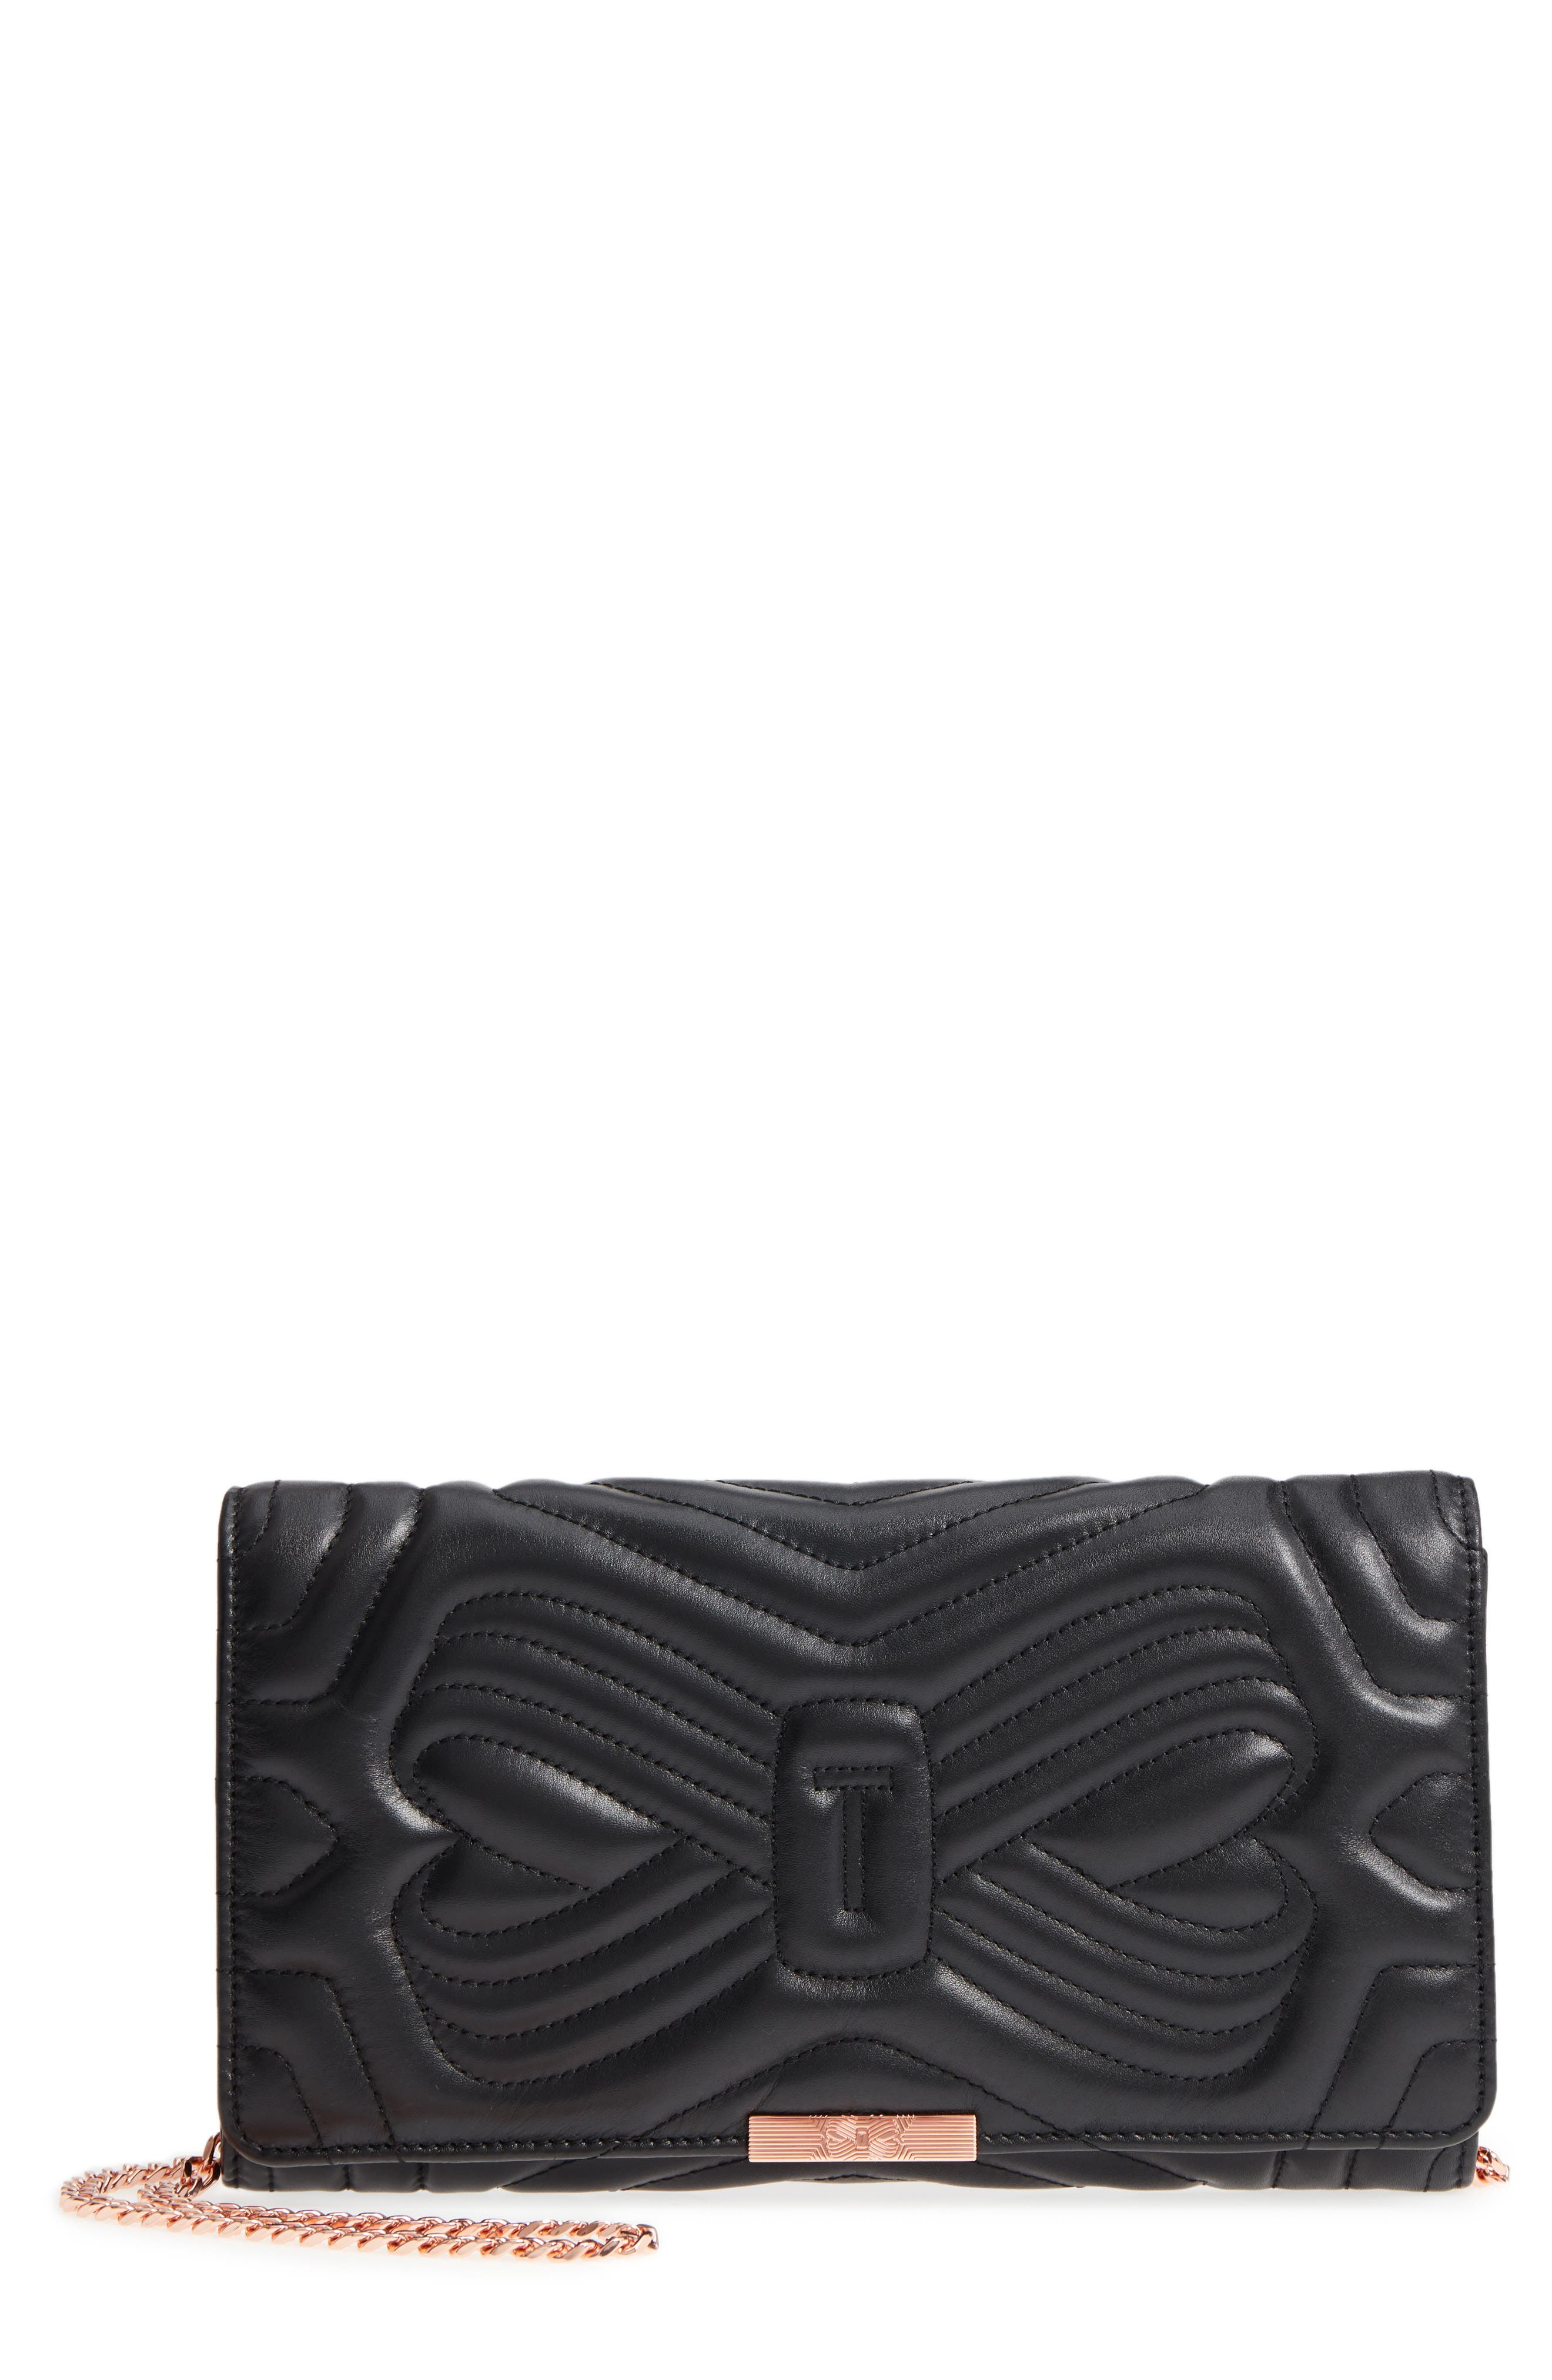 Ted Baker London Quilted Bow Leather Clutch